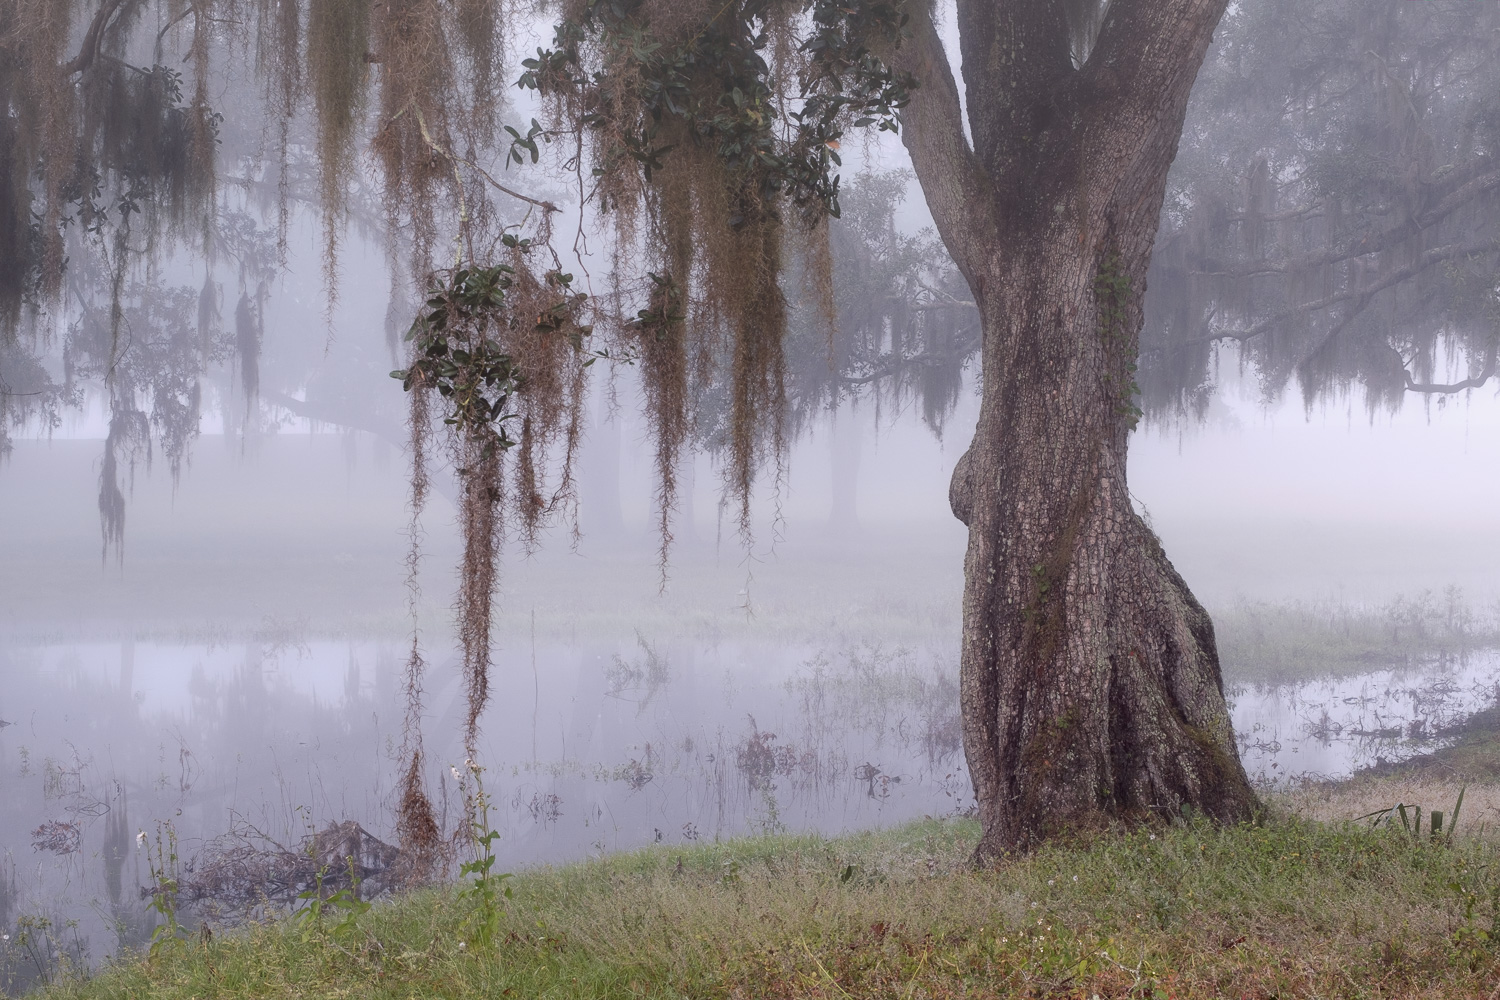 I choose to shoot a little tighter in order to emphasize the Spanish moss hanging from the tree. It's scenes like this that scream for fog. Fujifilm X-Pro2, 50mm, 1/4 @ f11, ISO 200.